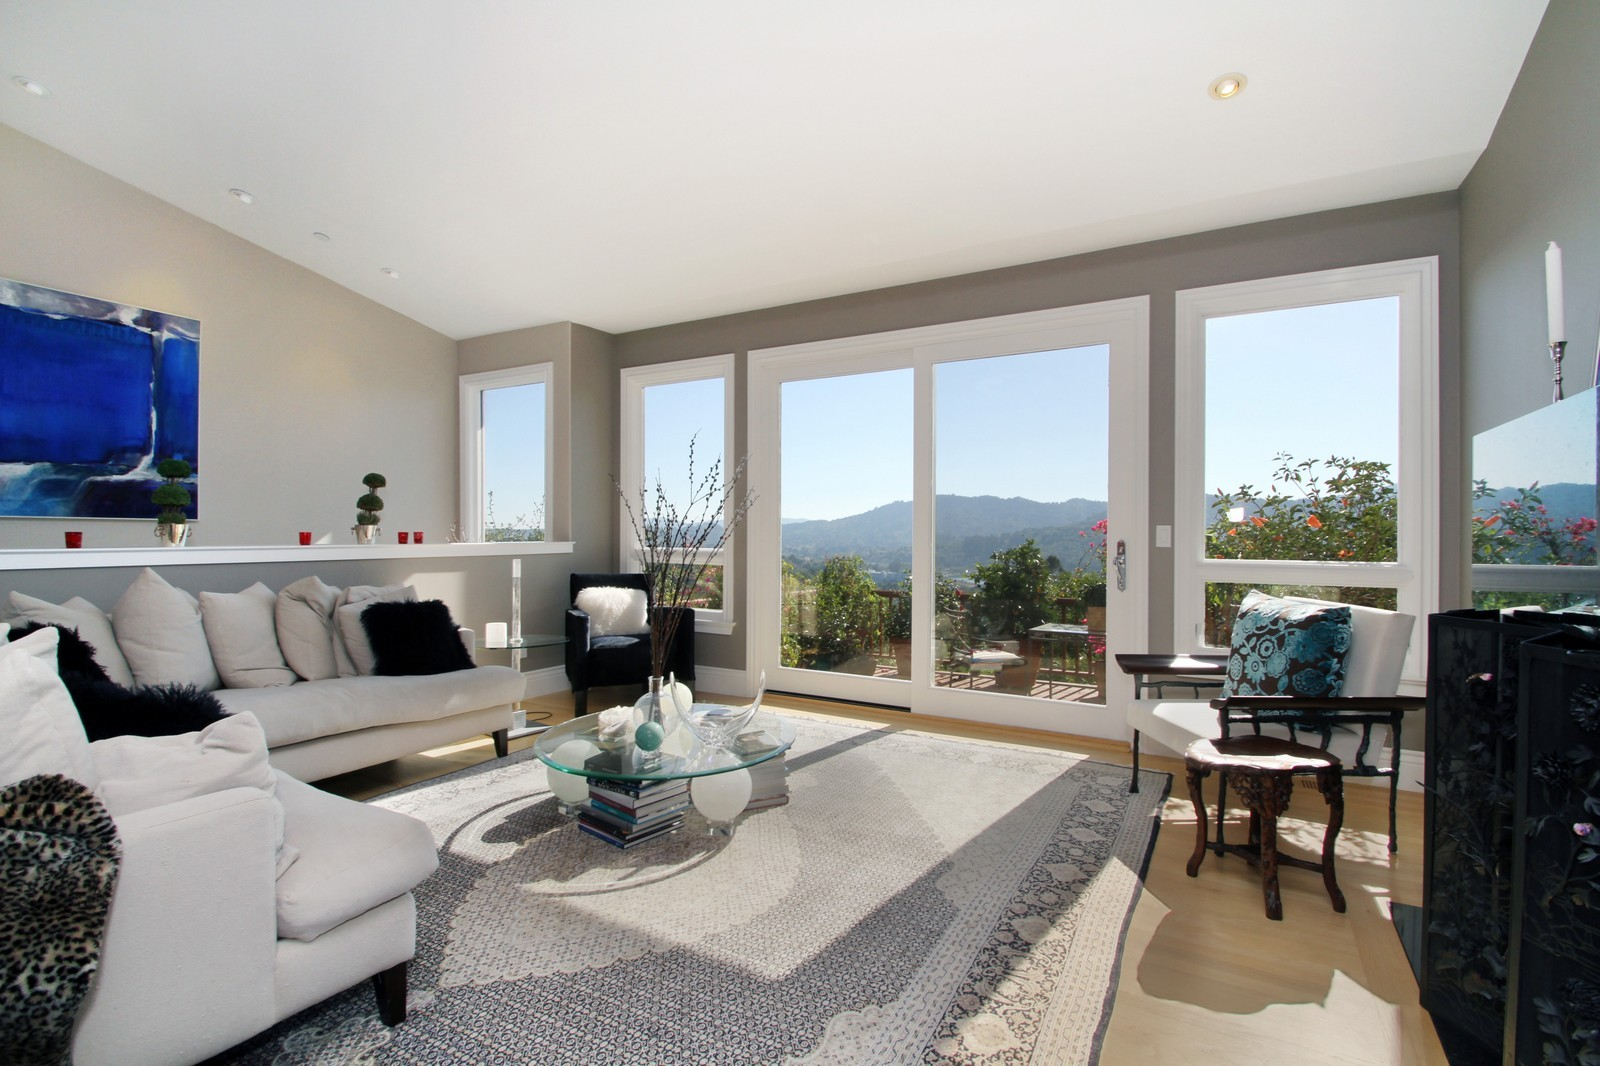 Real Estate Photography - 73 Upper Toyon Drive, Kentfield, CA, 94904 - Living Room